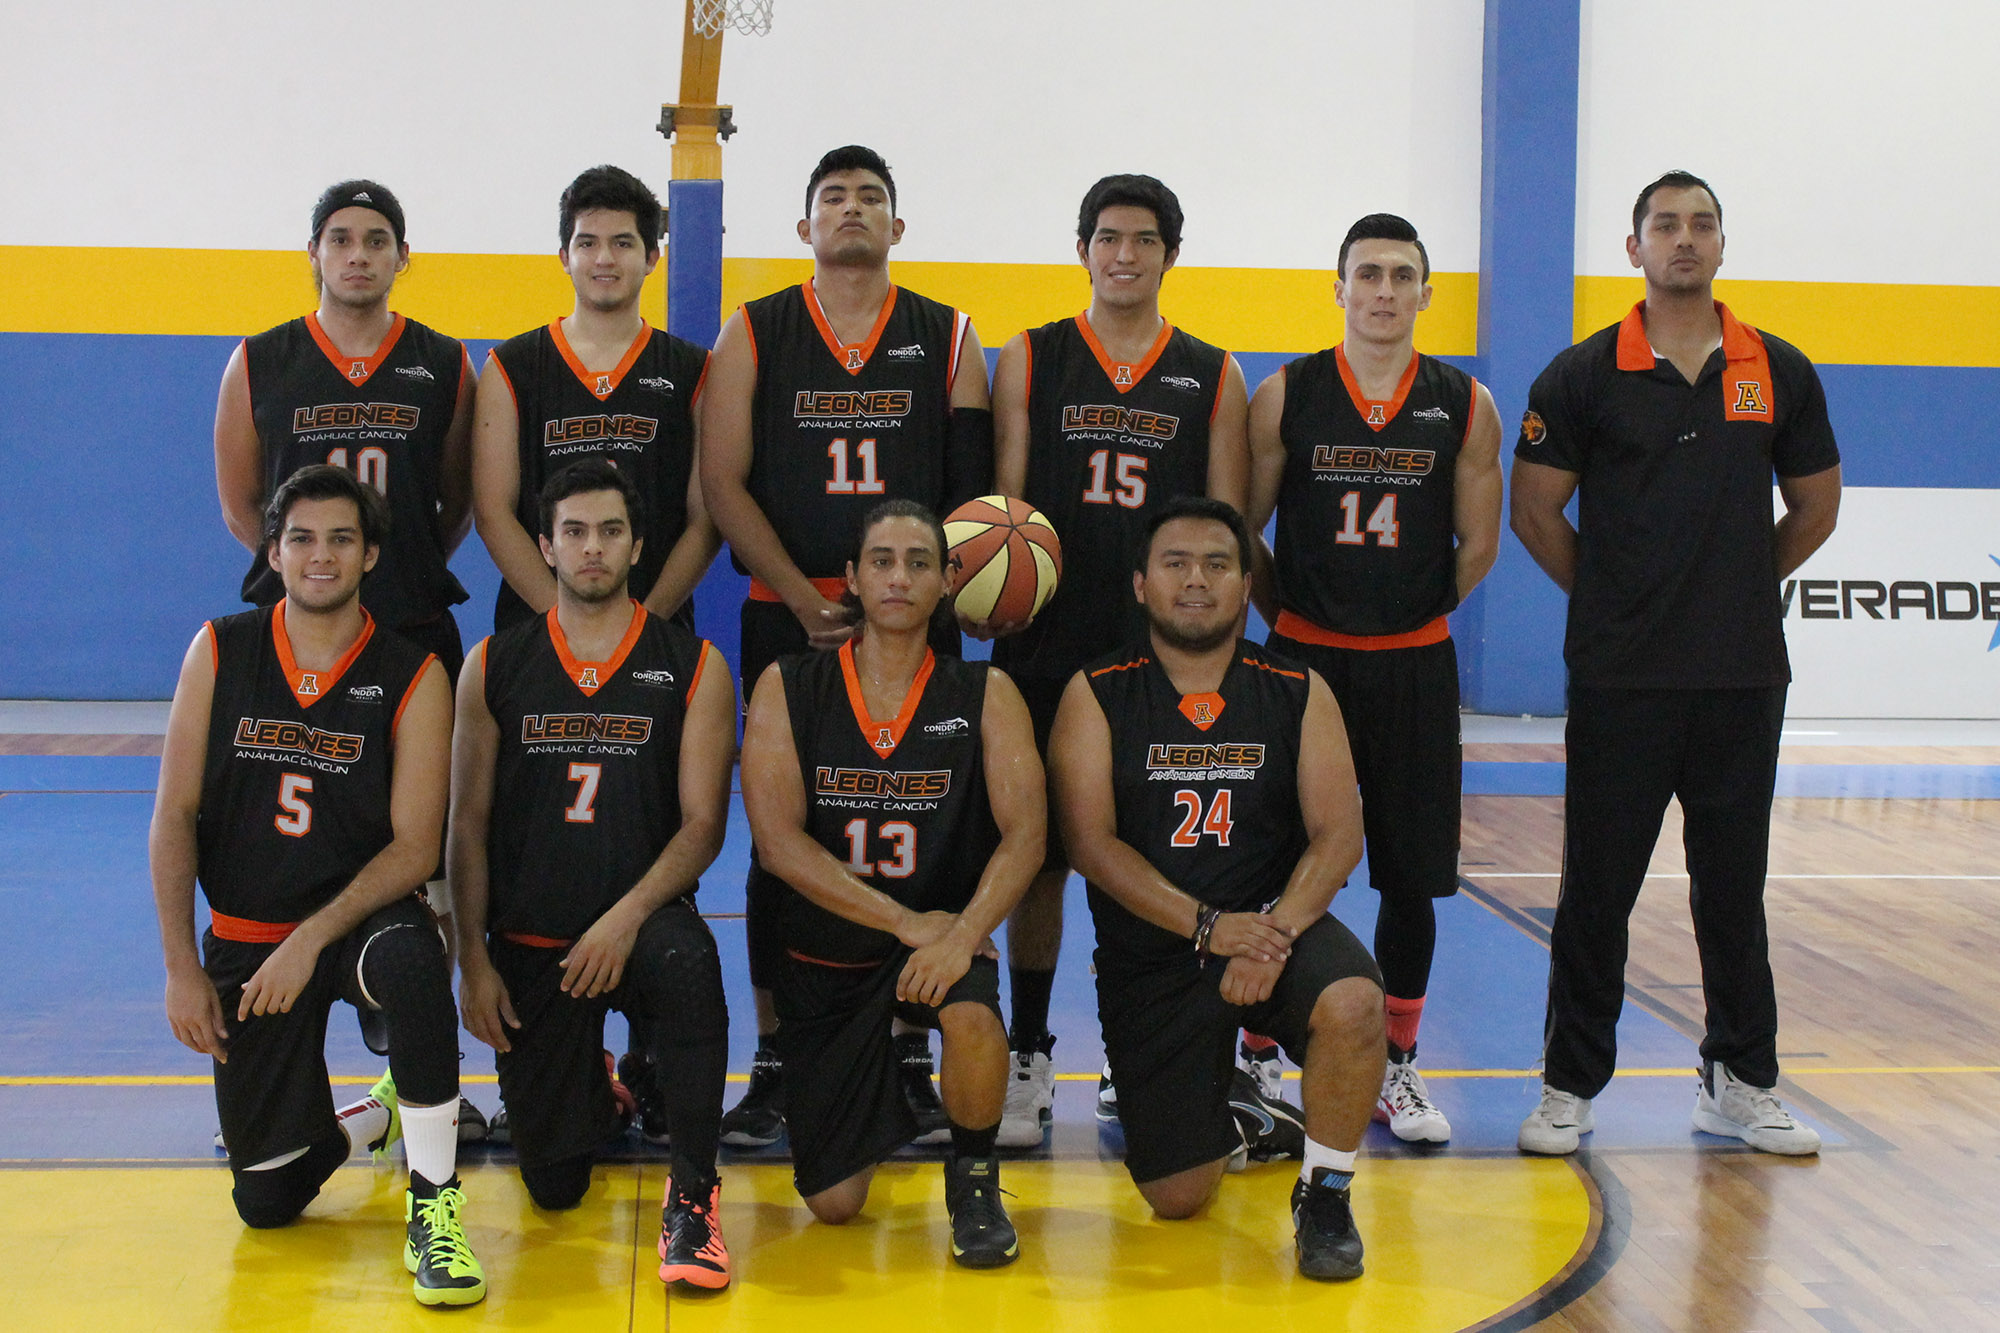 Universiada nacional 2015-basquetbol ITESM Guadalajara vs Universidad Marista de Merida-foto Norma Martinez 11